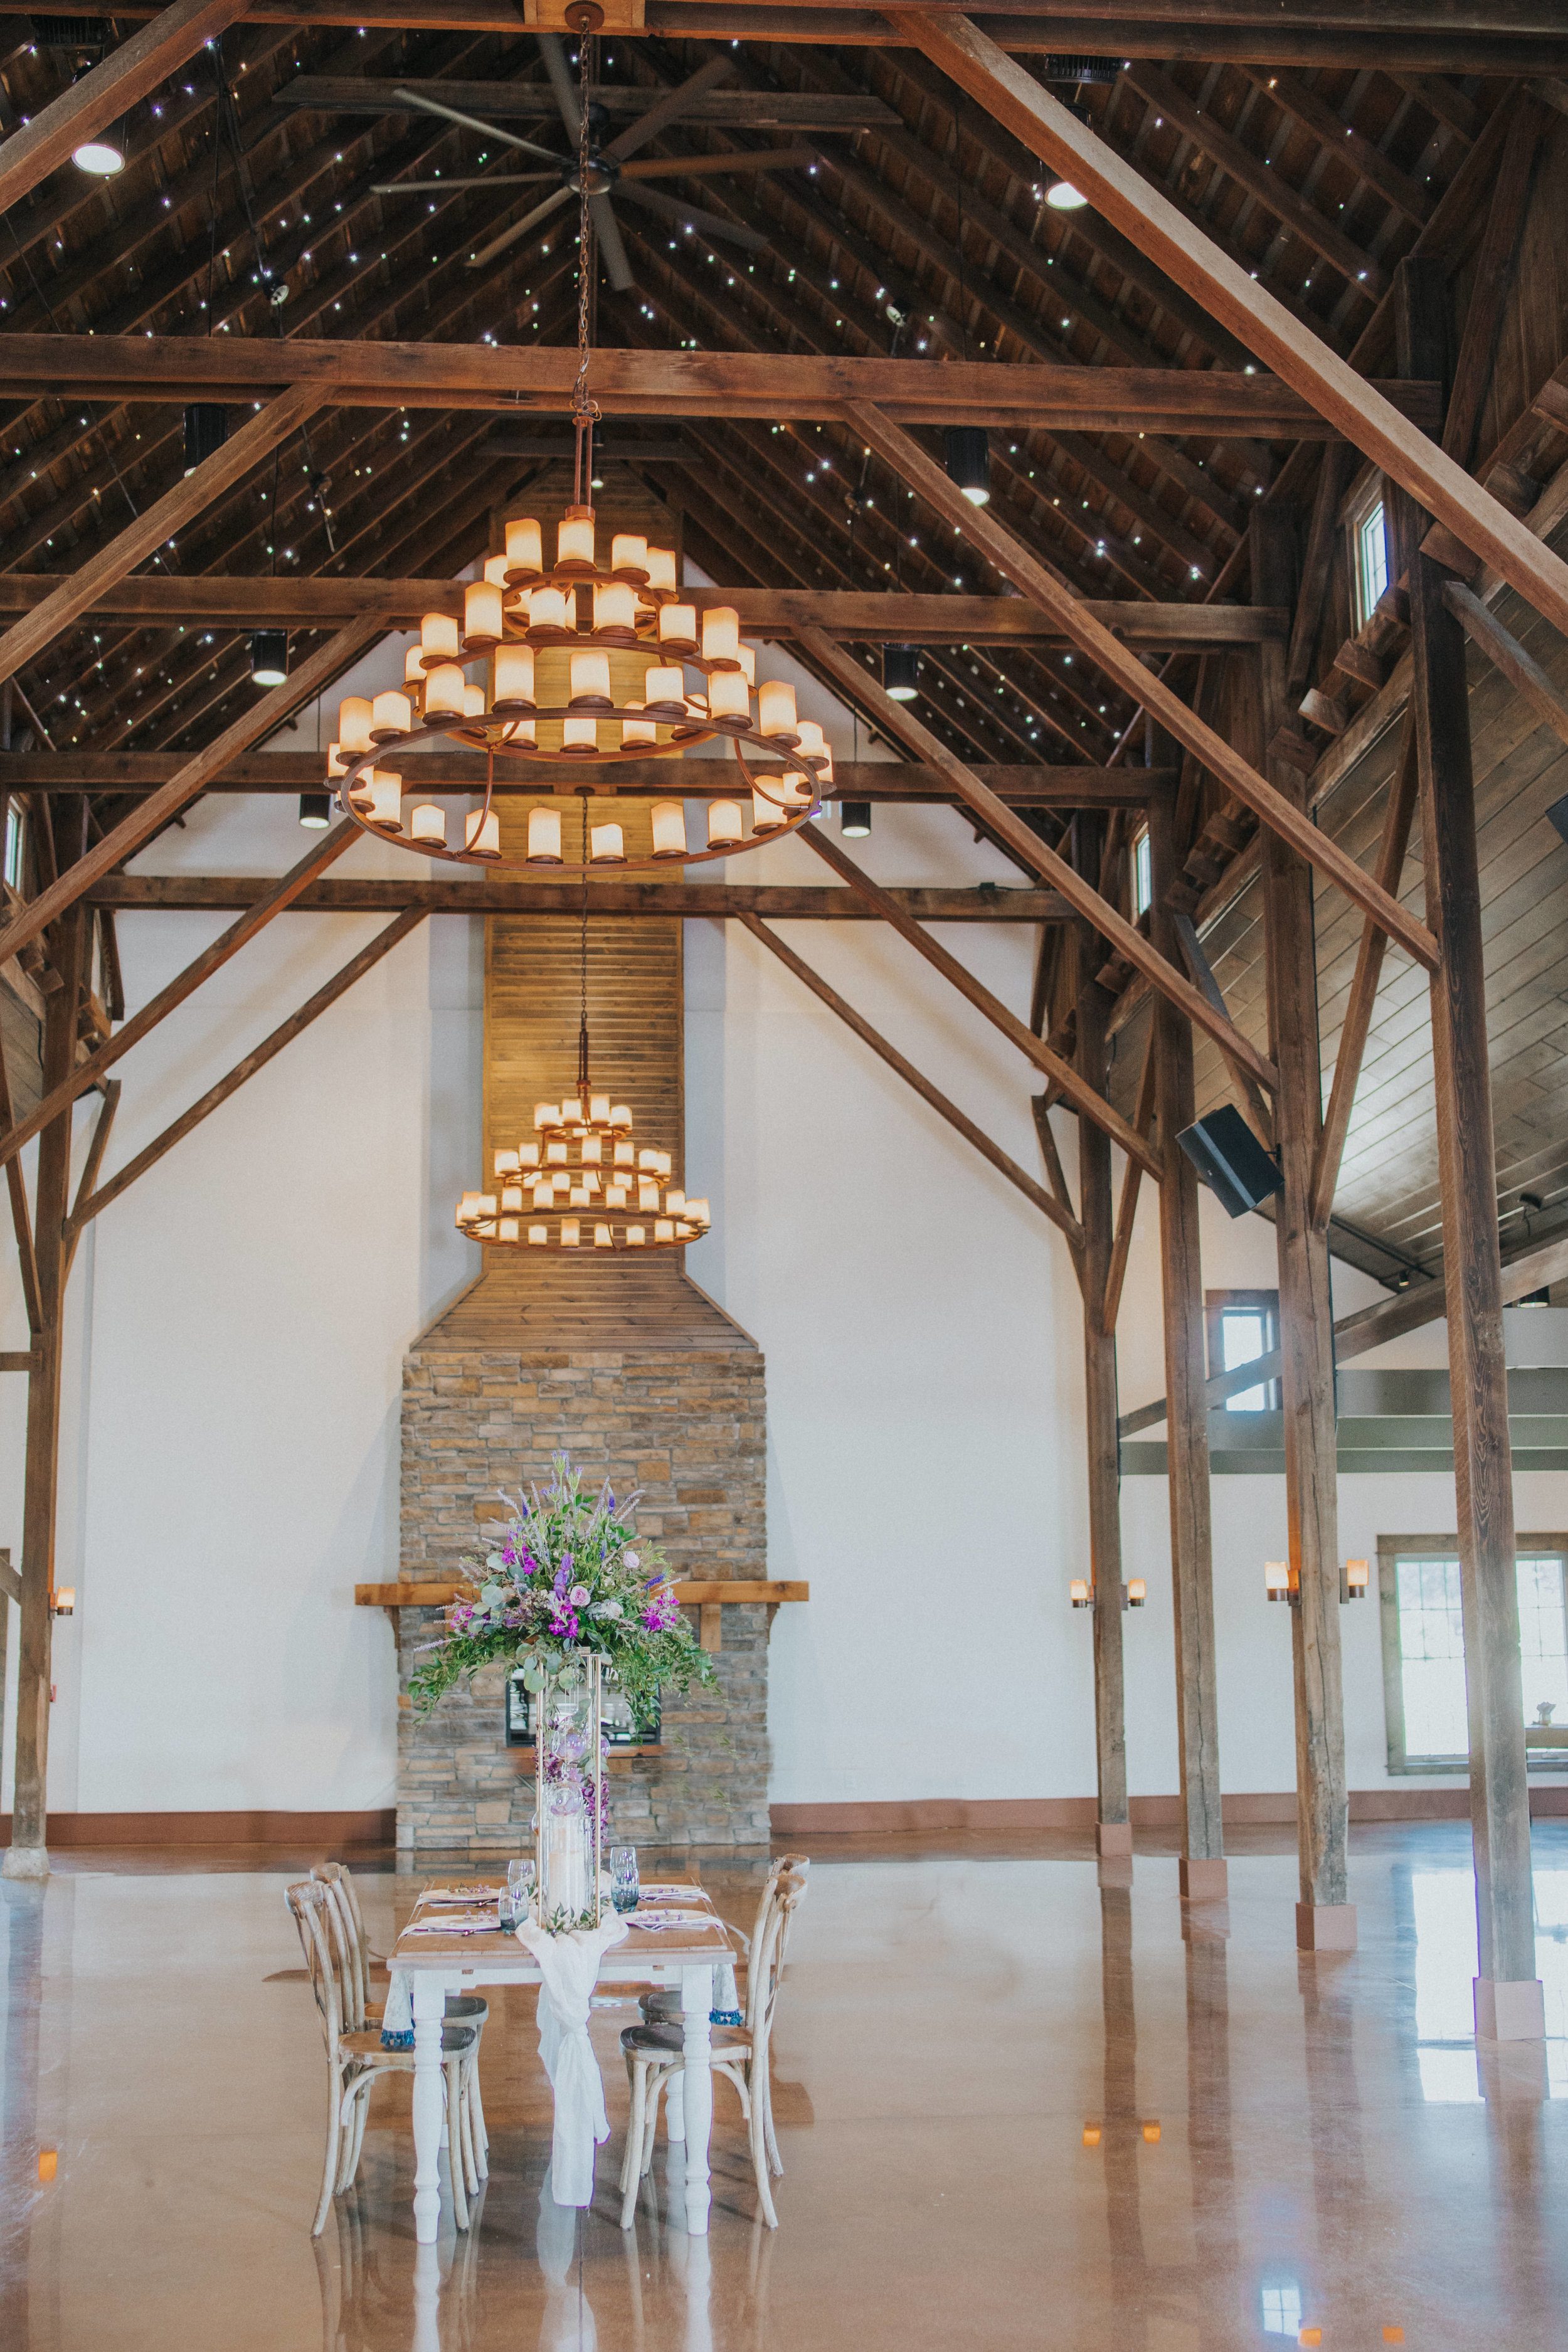 137 tiny-luxe-weddings-iowa-venue-photogeraphy-palace.jpg